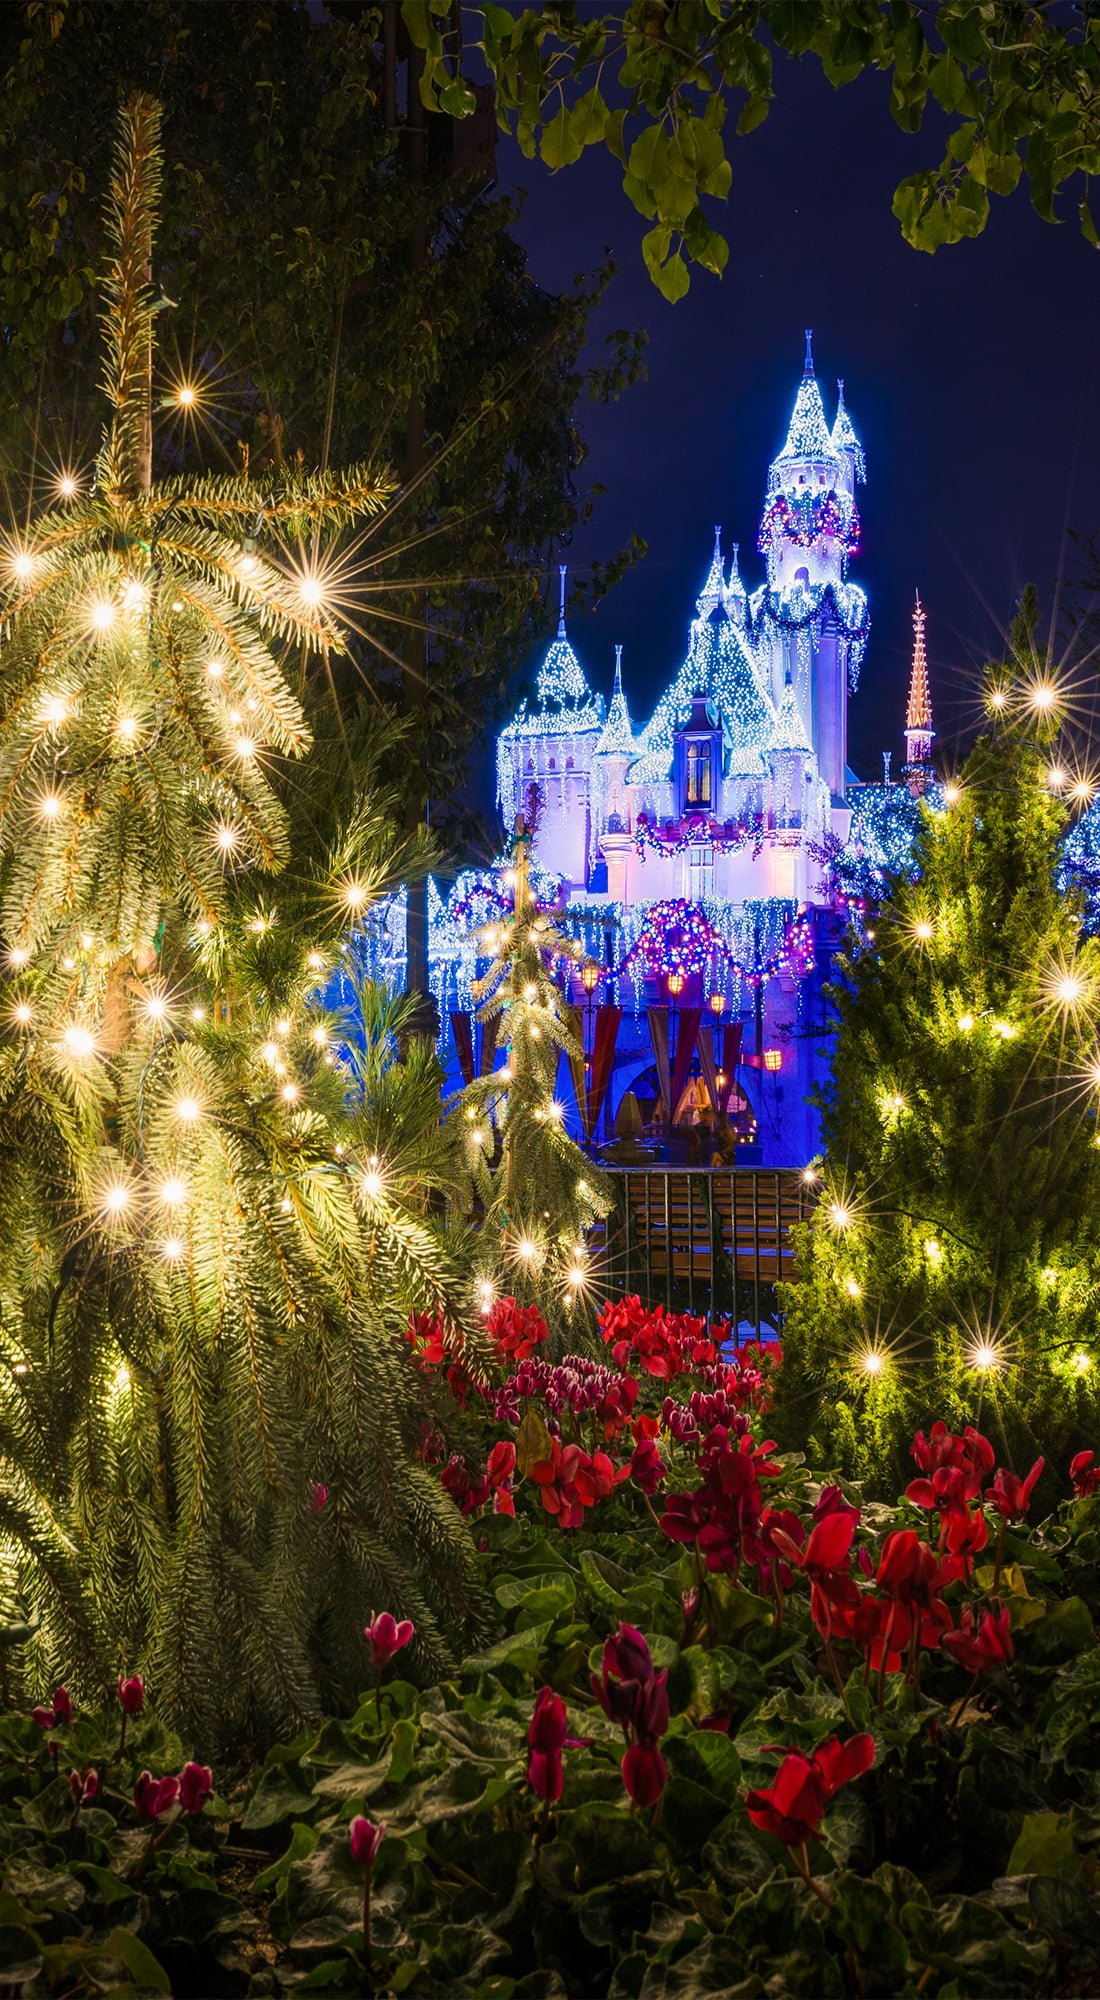 Walt Disney Christmas Wallpaper.Free Disney Iphone Wallpapers Disney Tourist Blog